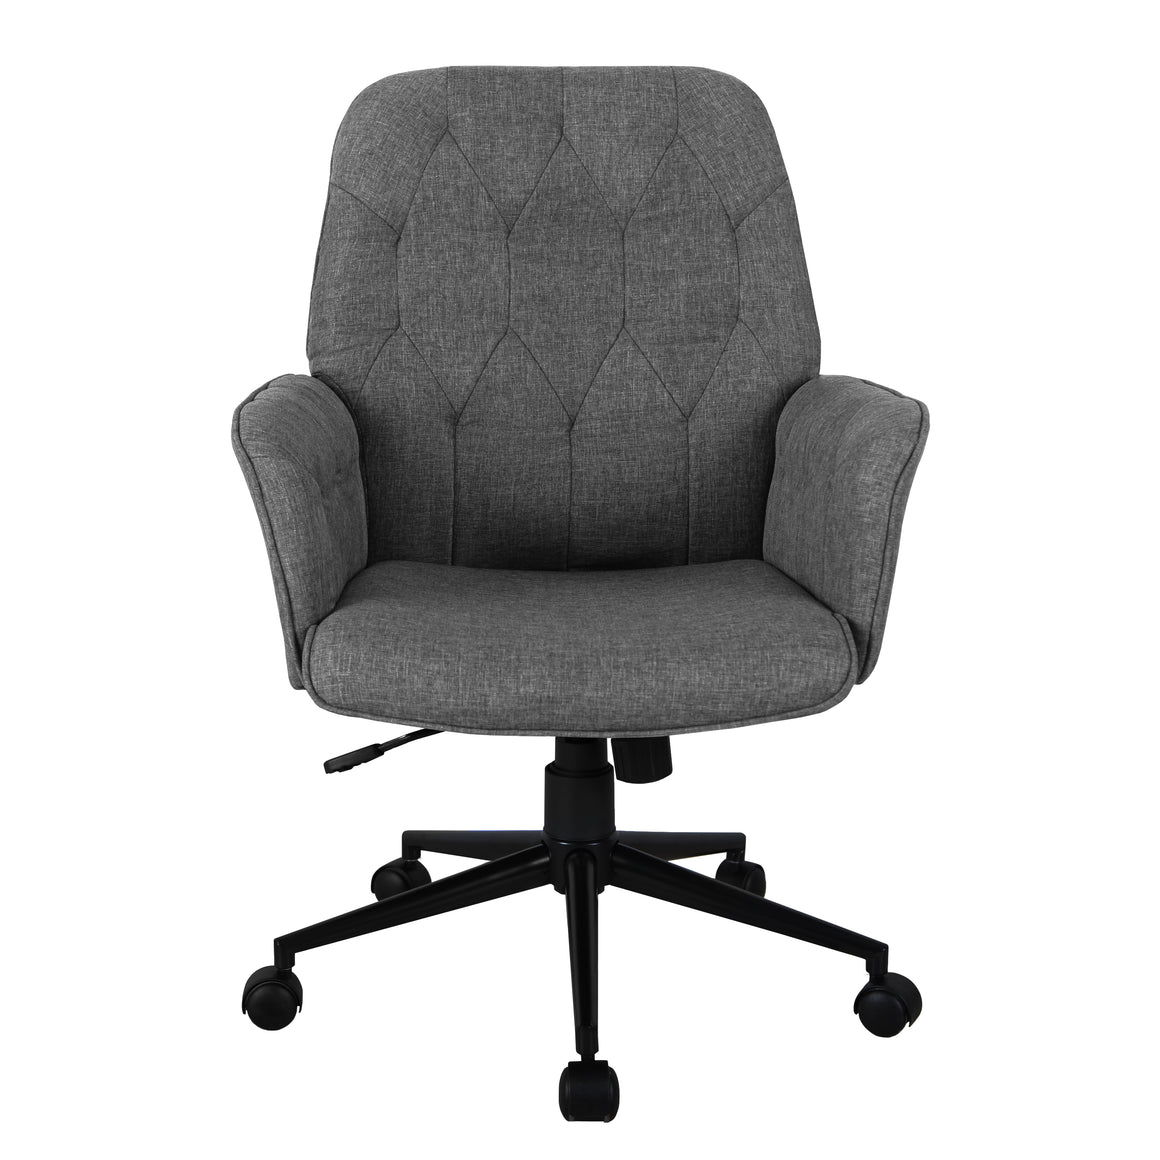 Modern Upholstered Tufted Office Chair with Arms